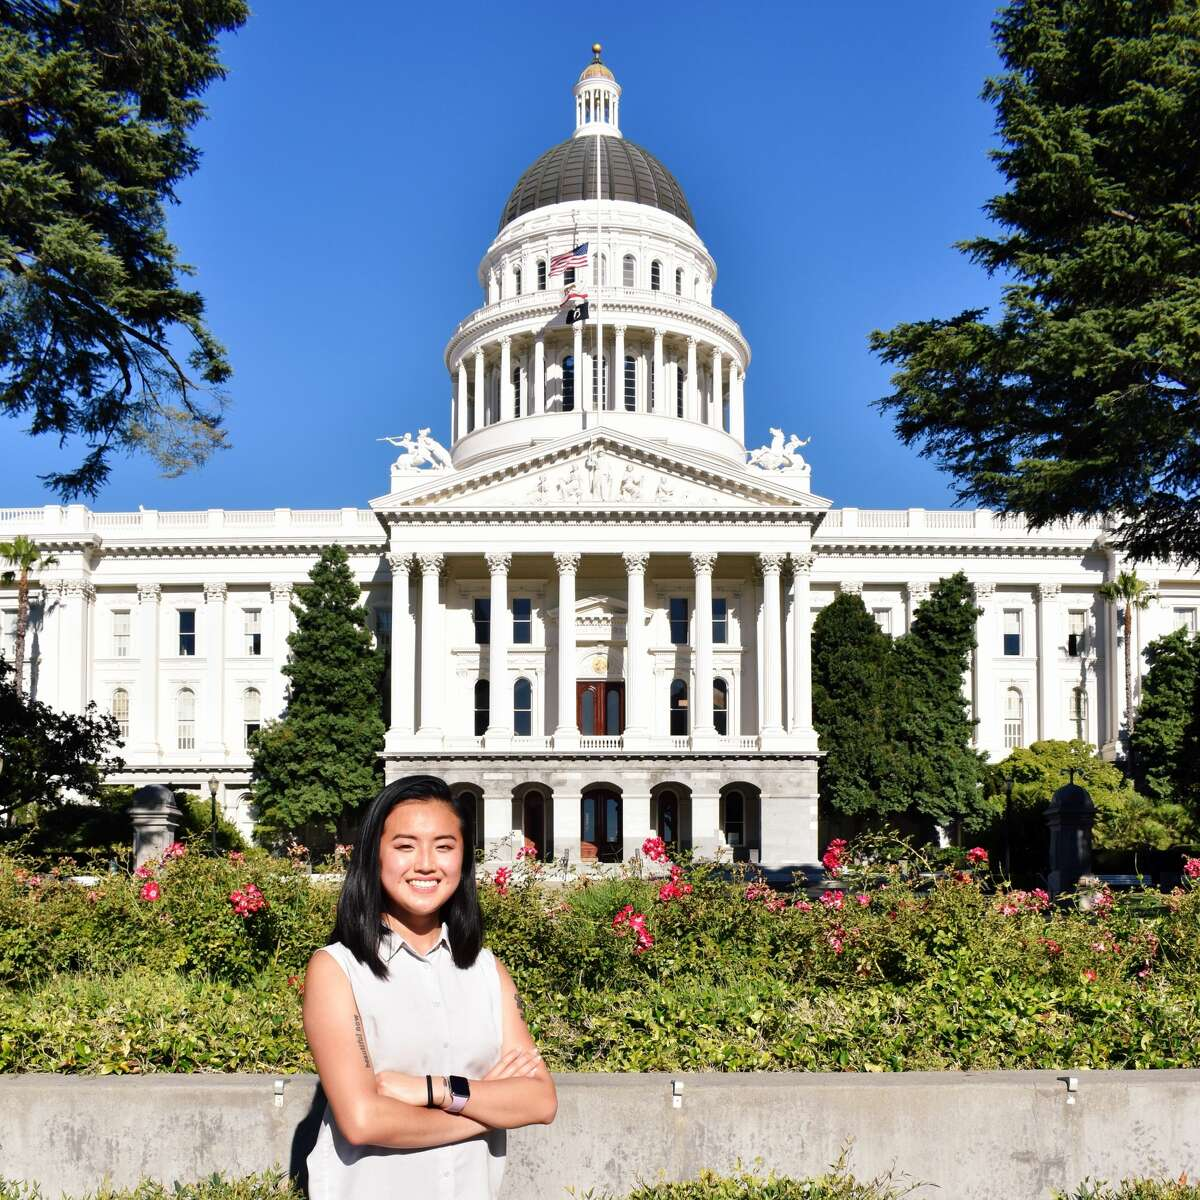 Carolyn Gray recently moved from the Bay Area to Sacramento. These are some of her observations, in her own words ...